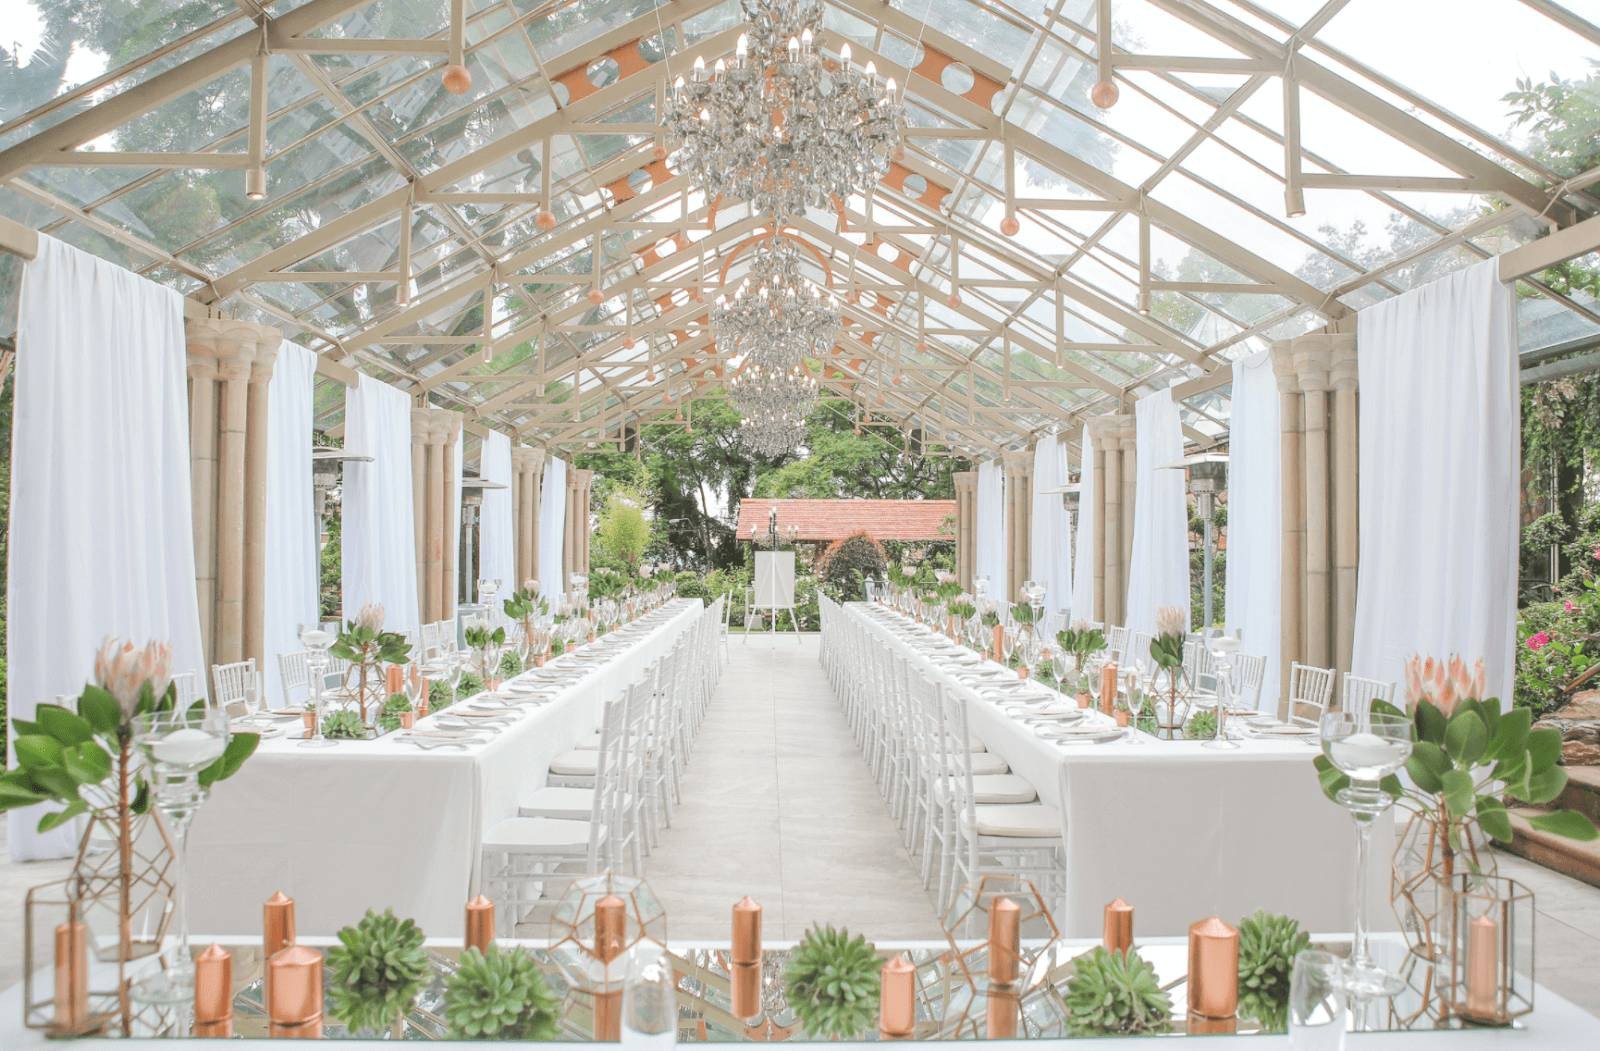 Ways to Take a Tented Wedding Design to the Next Level